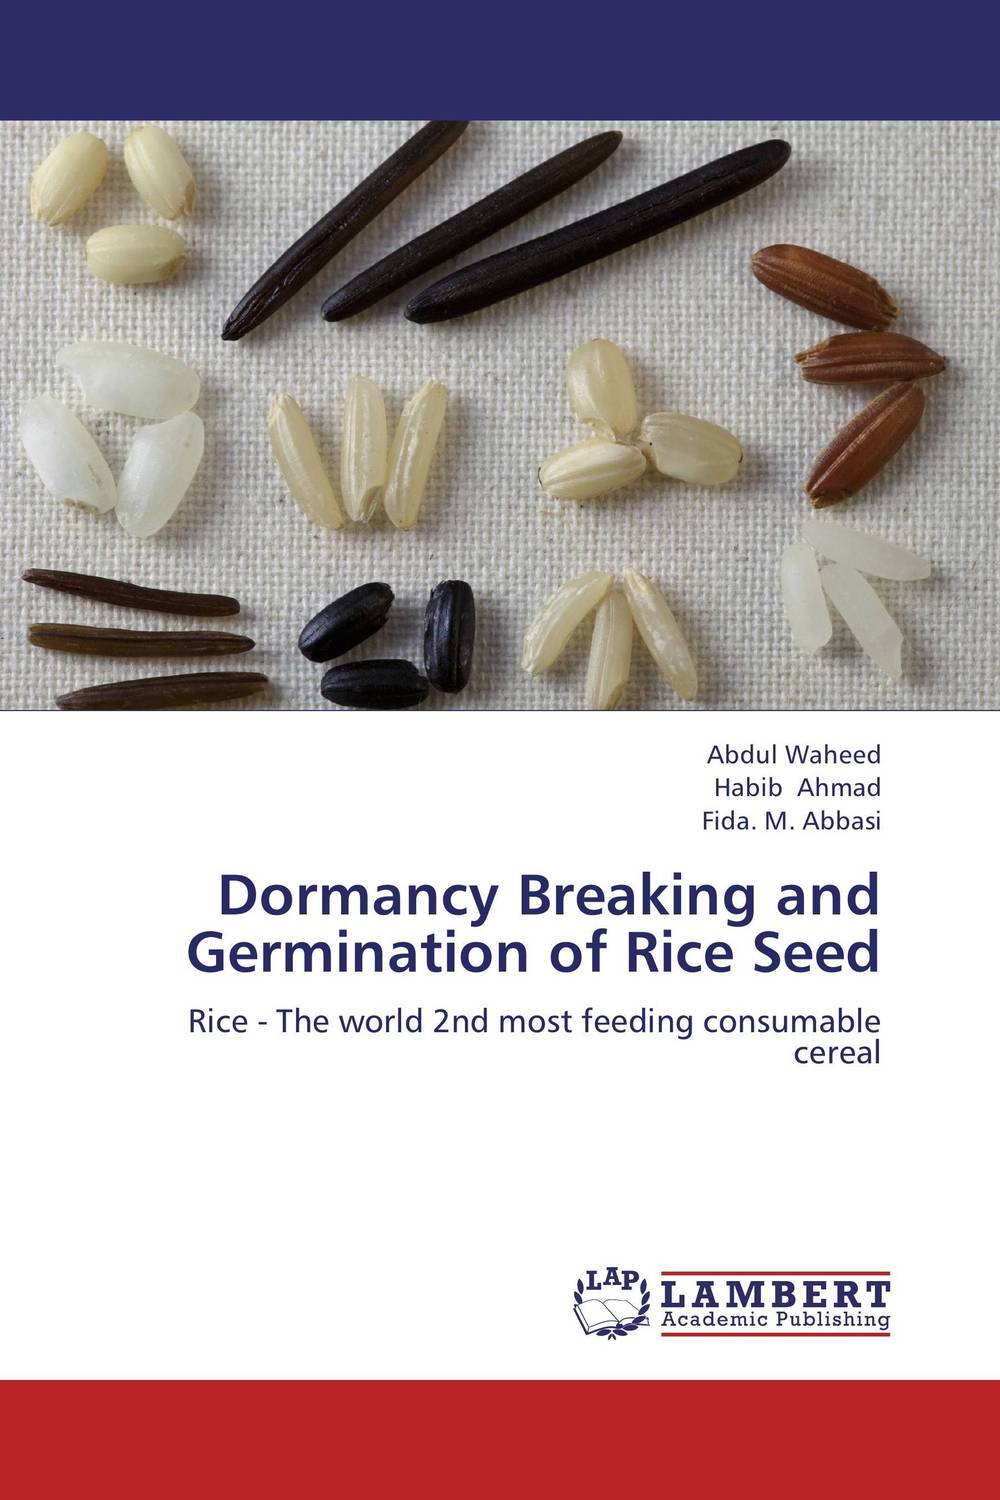 Dormancy Breaking and Germination of Rice Seed seed dormancy and germination